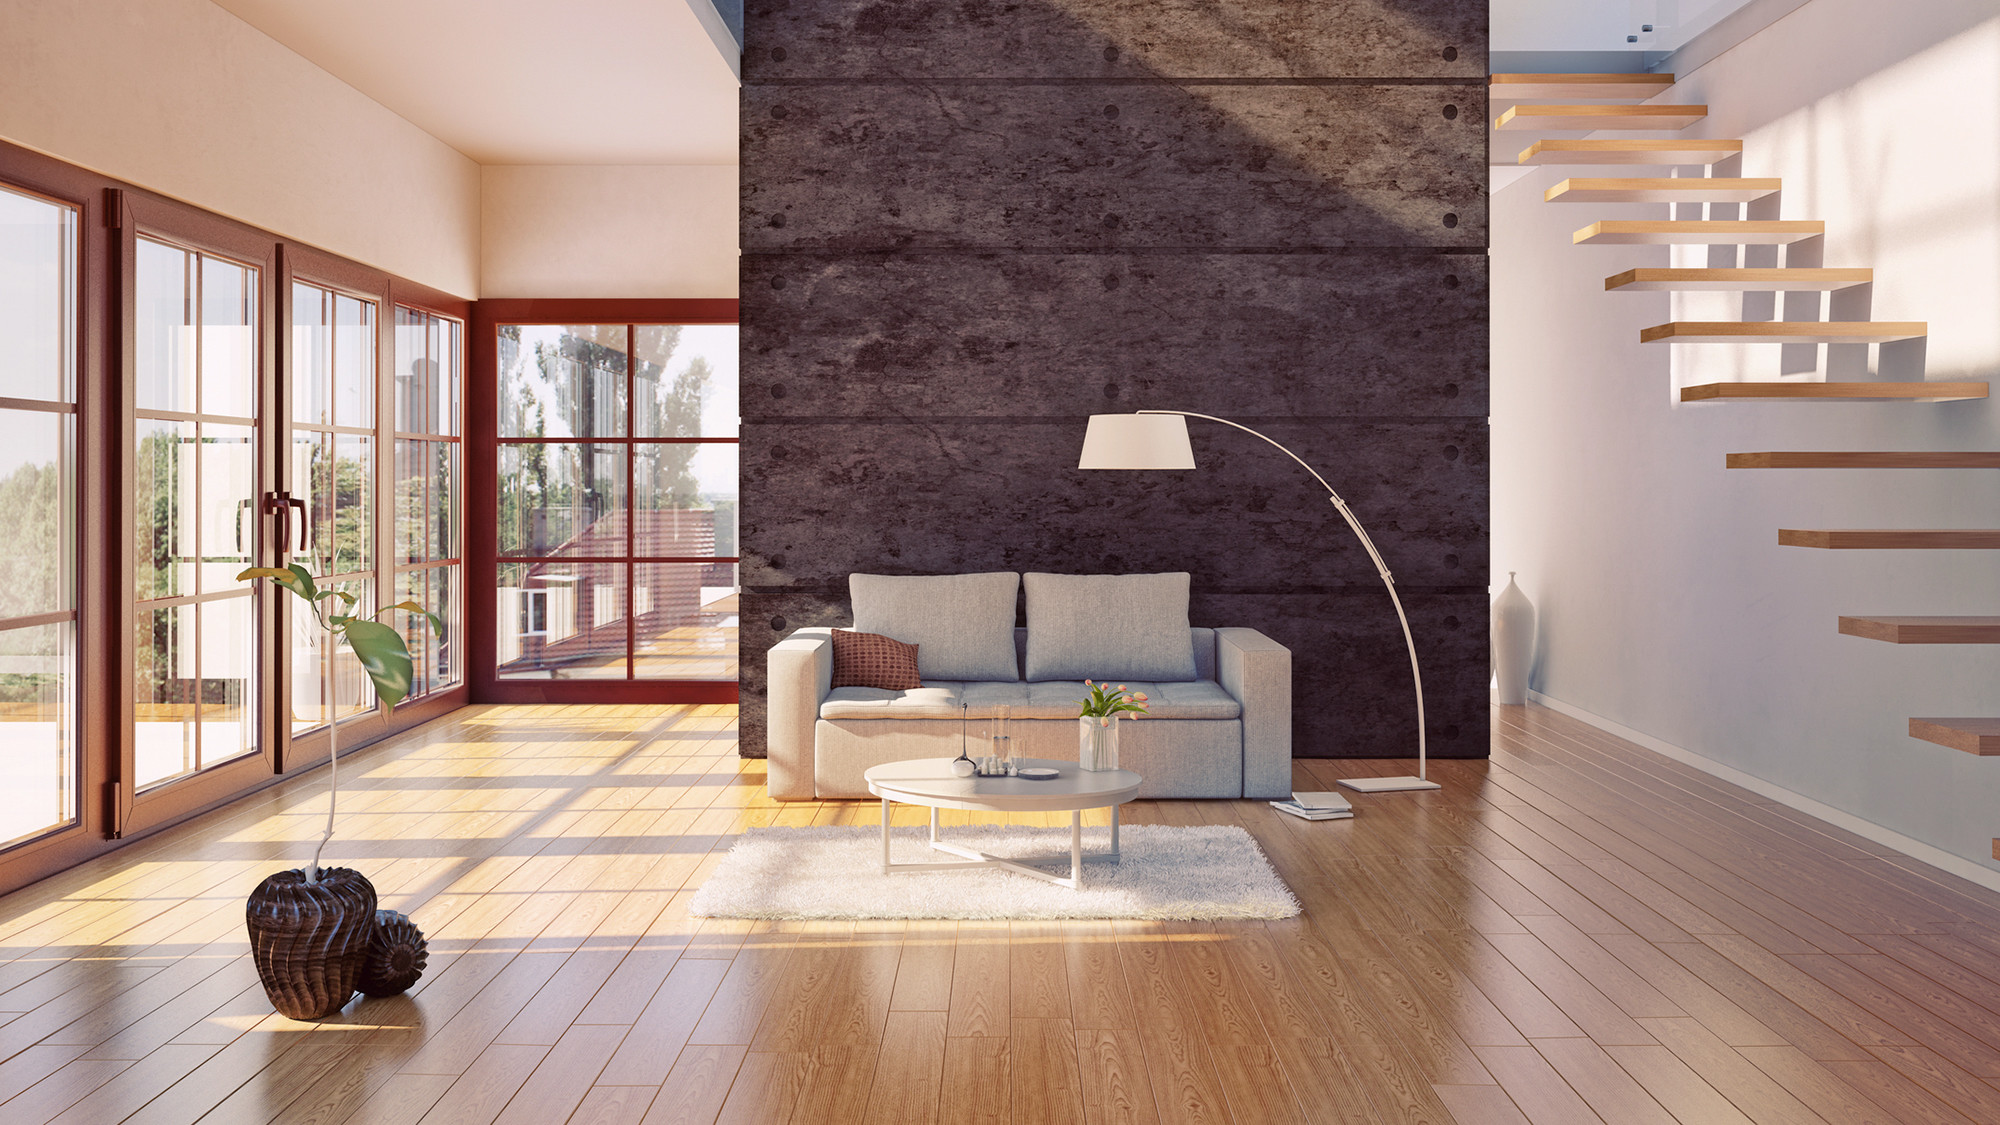 Average Cost for Hardwood Floors and Installation Of Do Hardwood Floors Provide the Best Return On Investment Realtor Coma Inside Hardwood Floors Investment